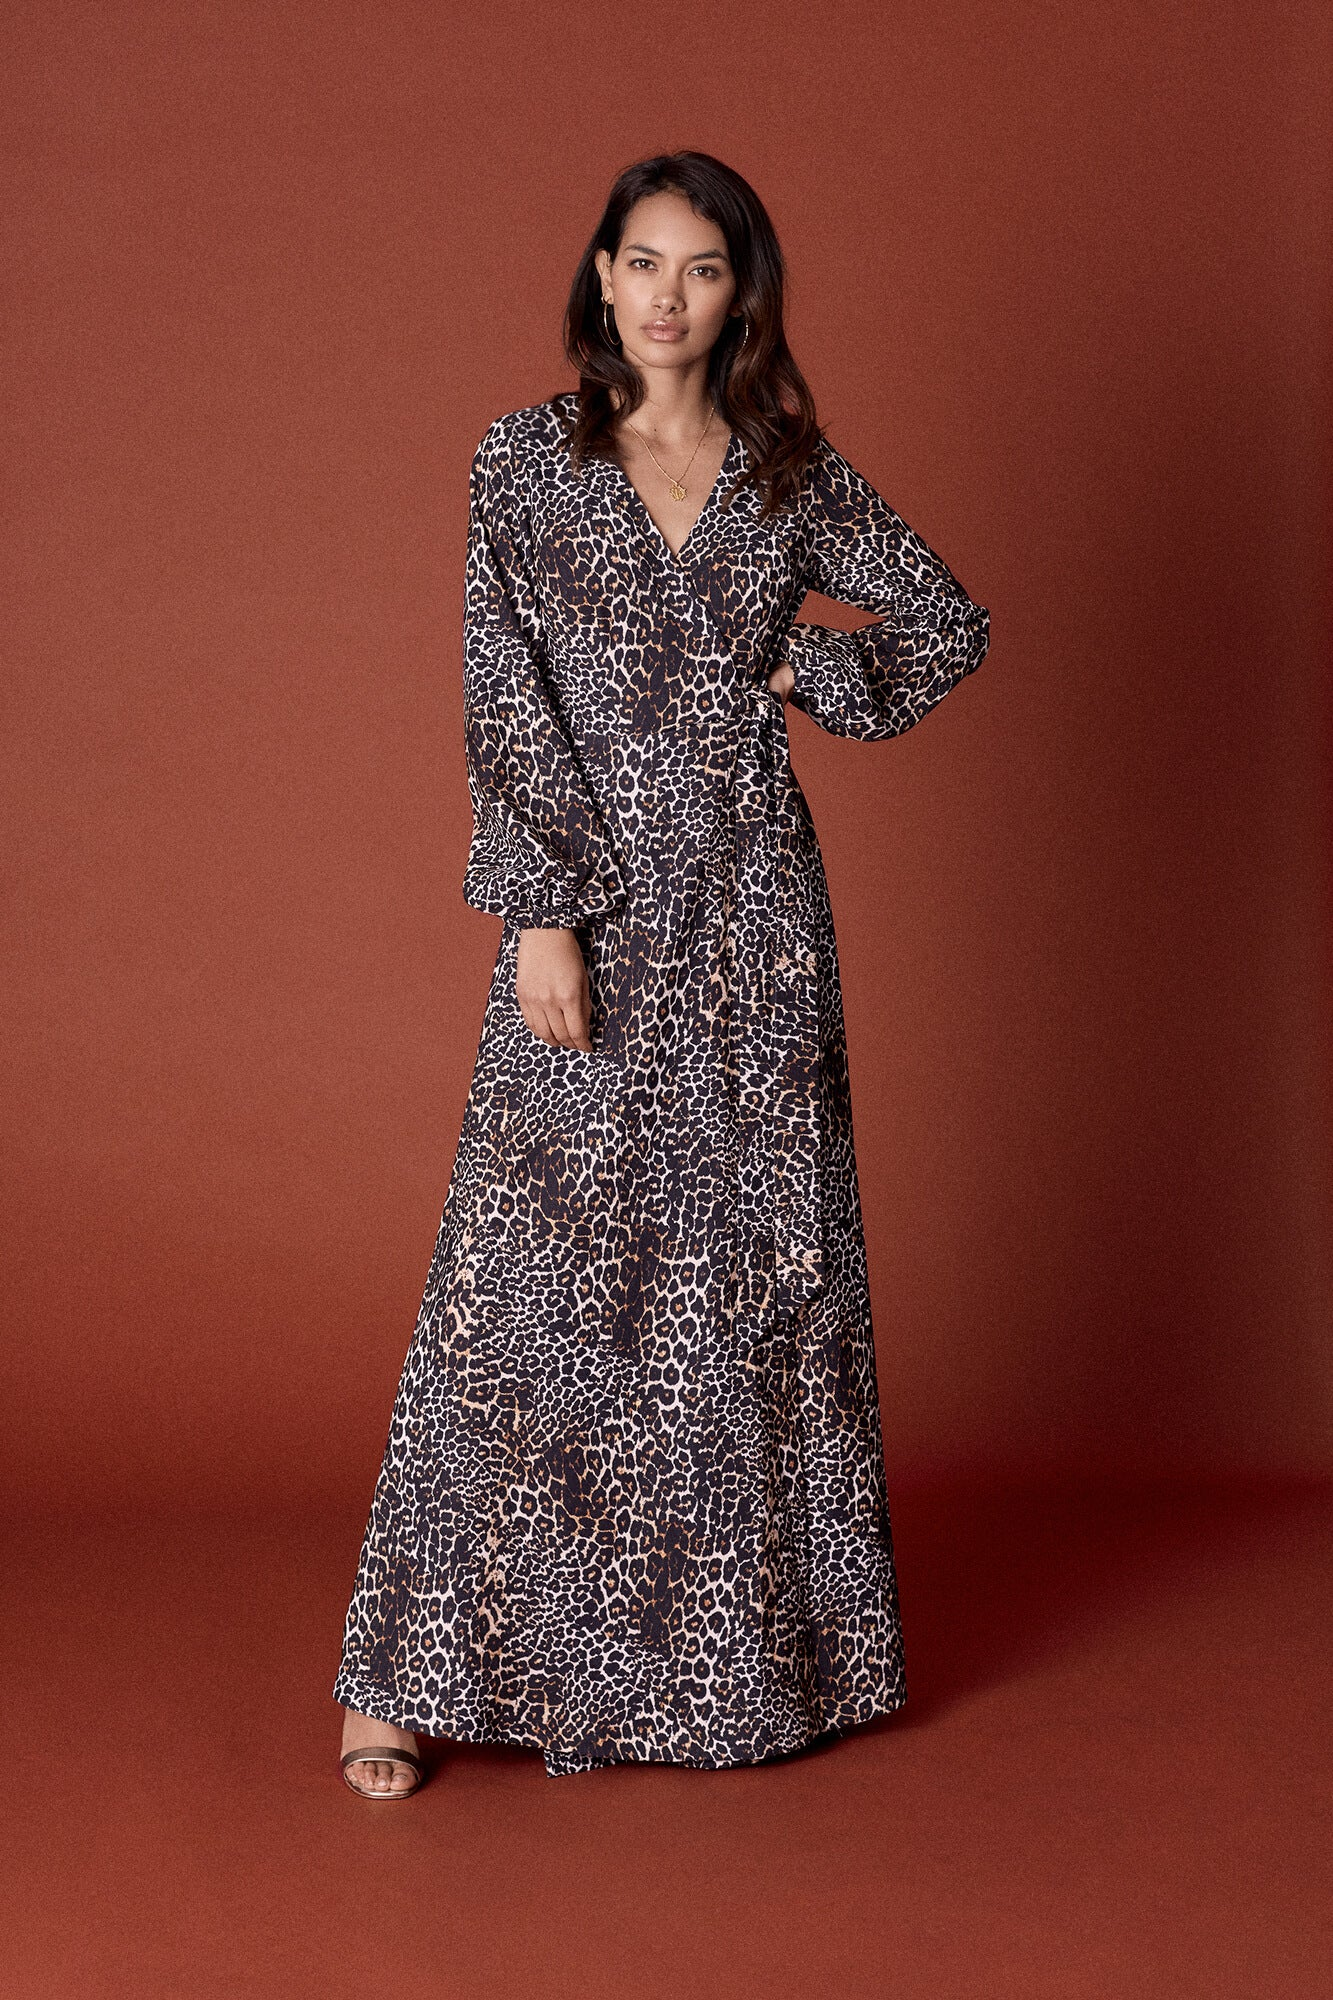 Leopard Print Penelope Dress